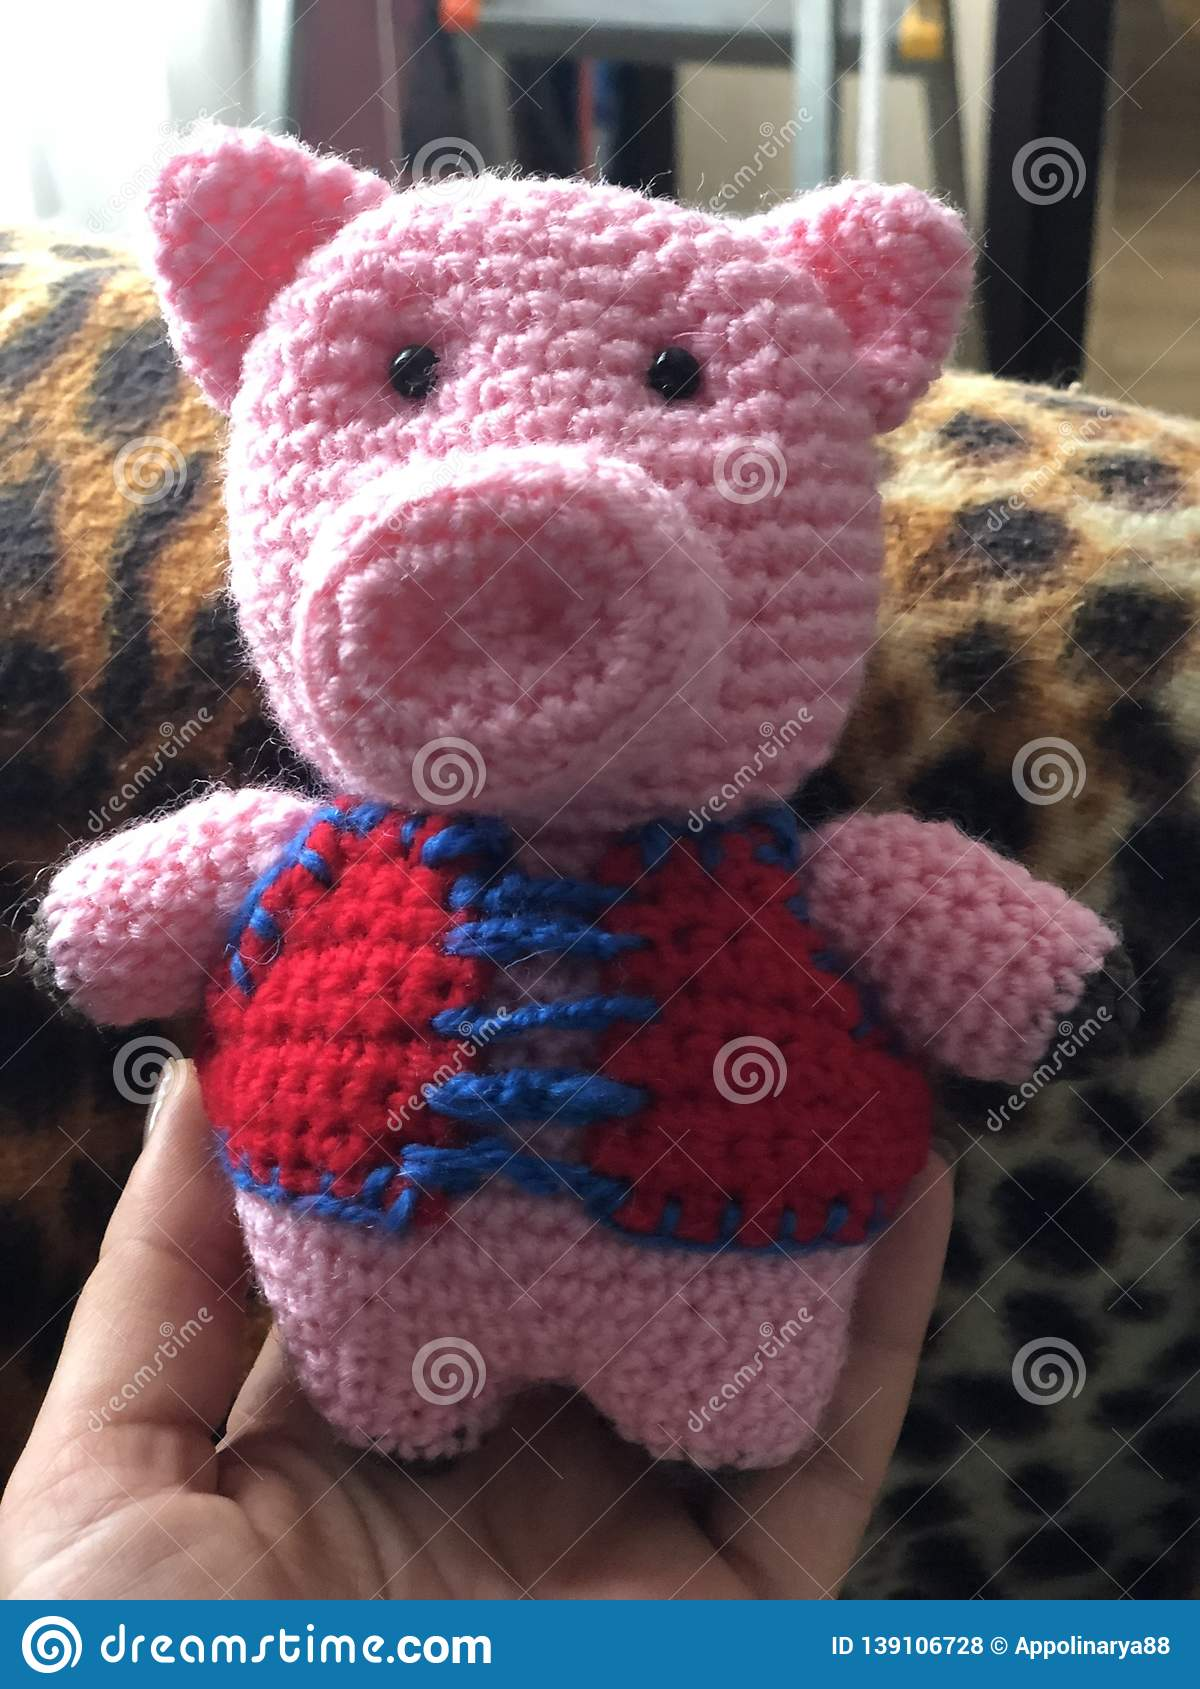 Handmade toy pink knitted pig in red gall